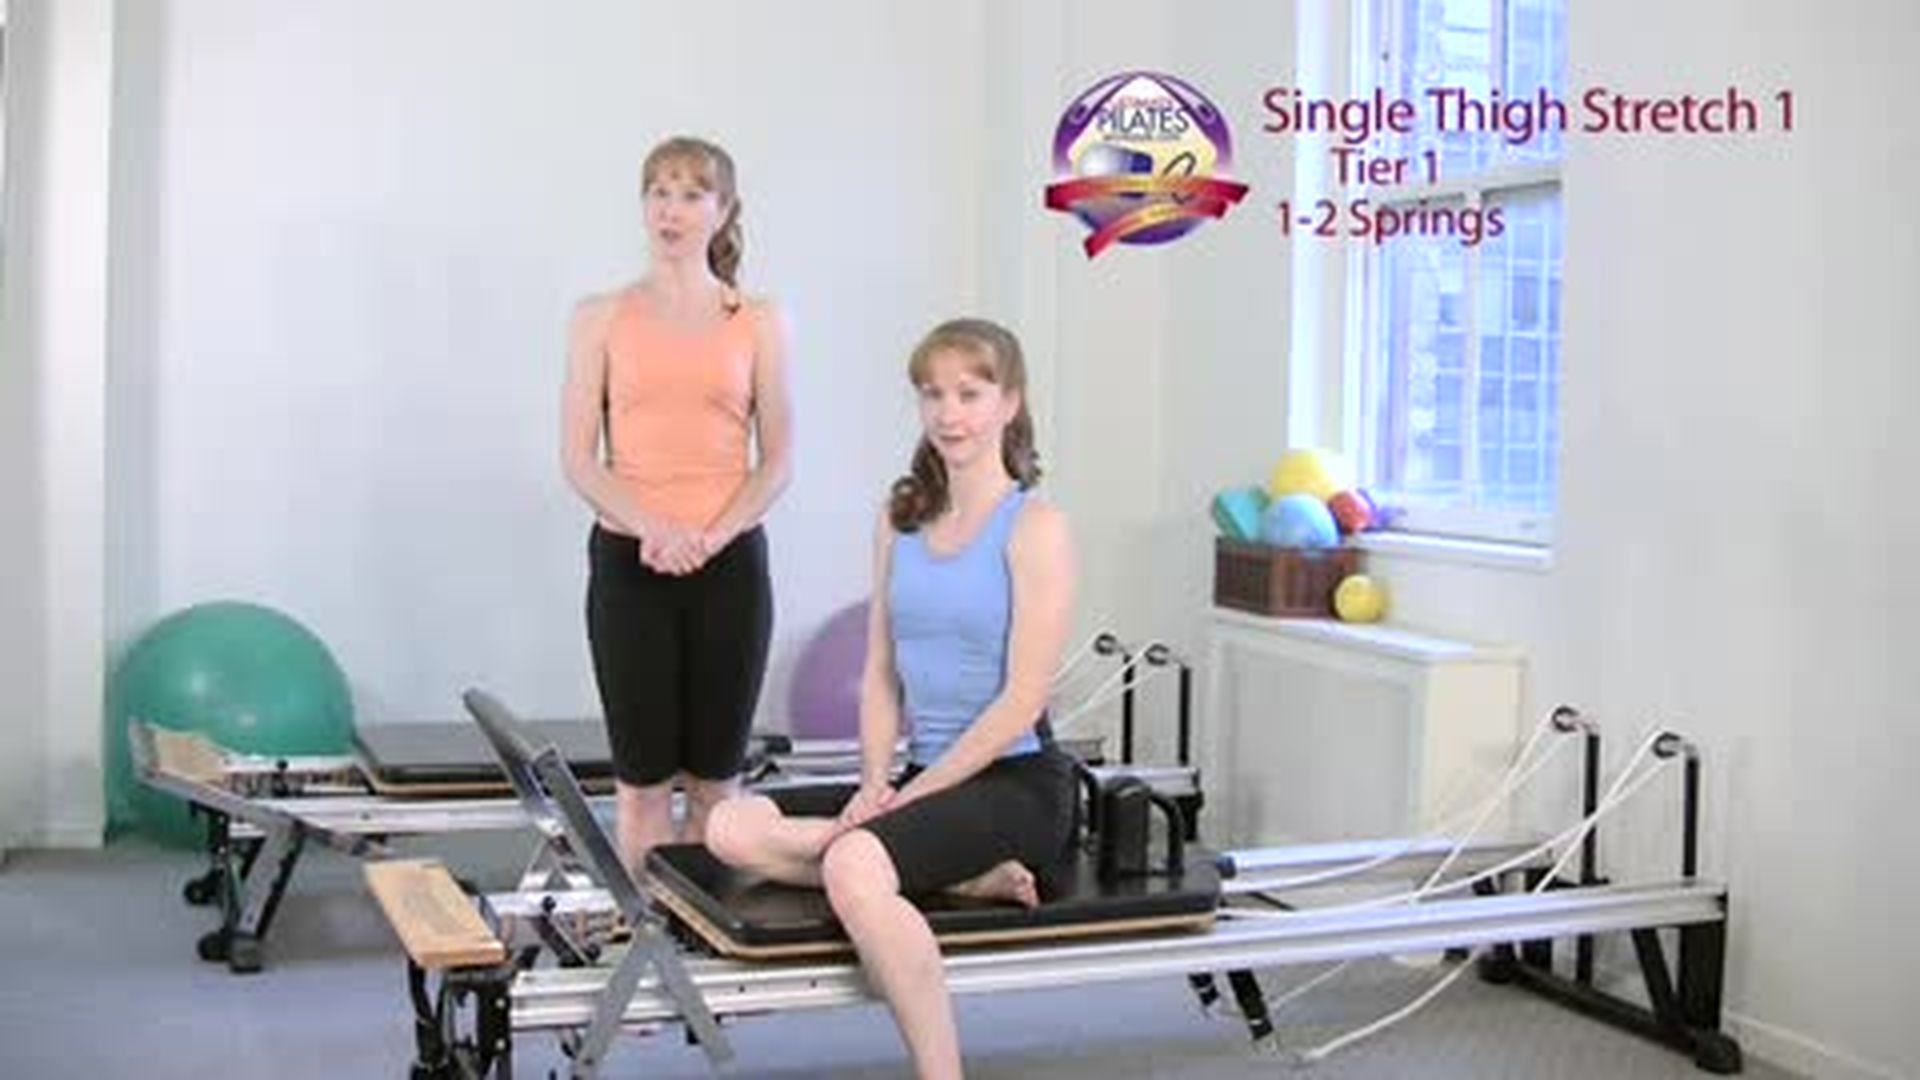 Single Thigh Stretch 1